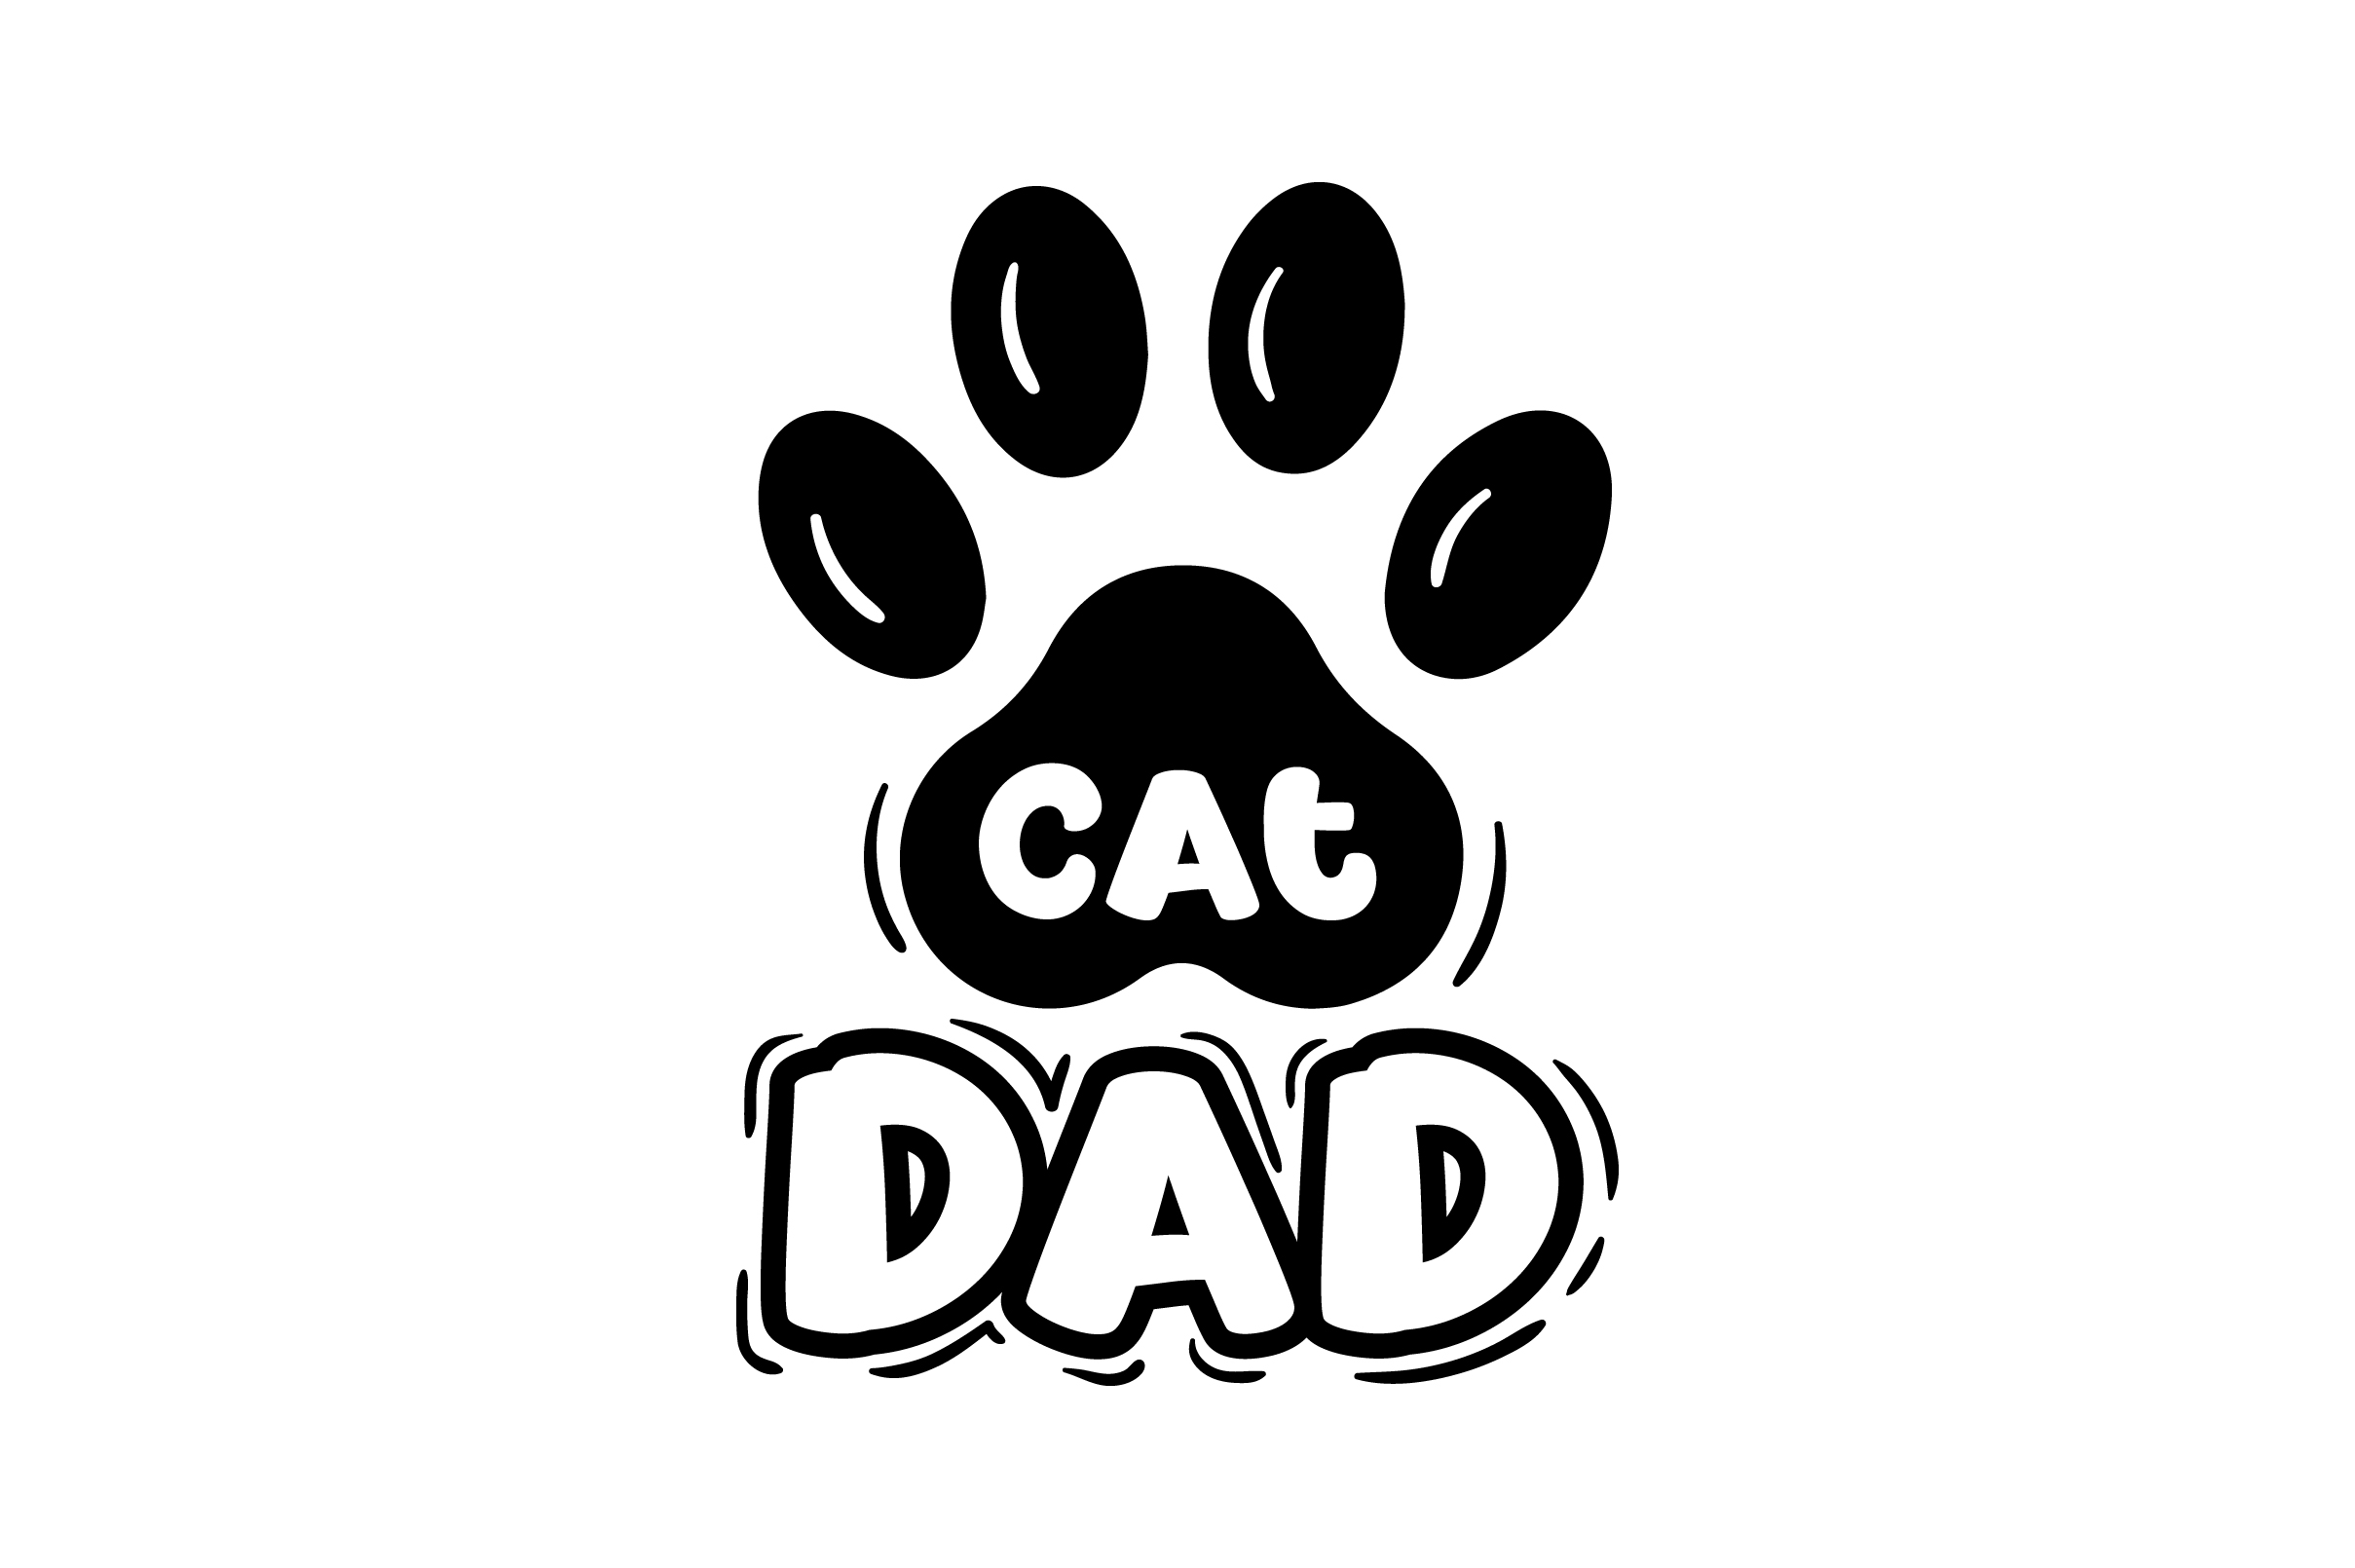 Download Free Cat Dad Svg Cut File By Creative Fabrica Crafts Creative Fabrica for Cricut Explore, Silhouette and other cutting machines.